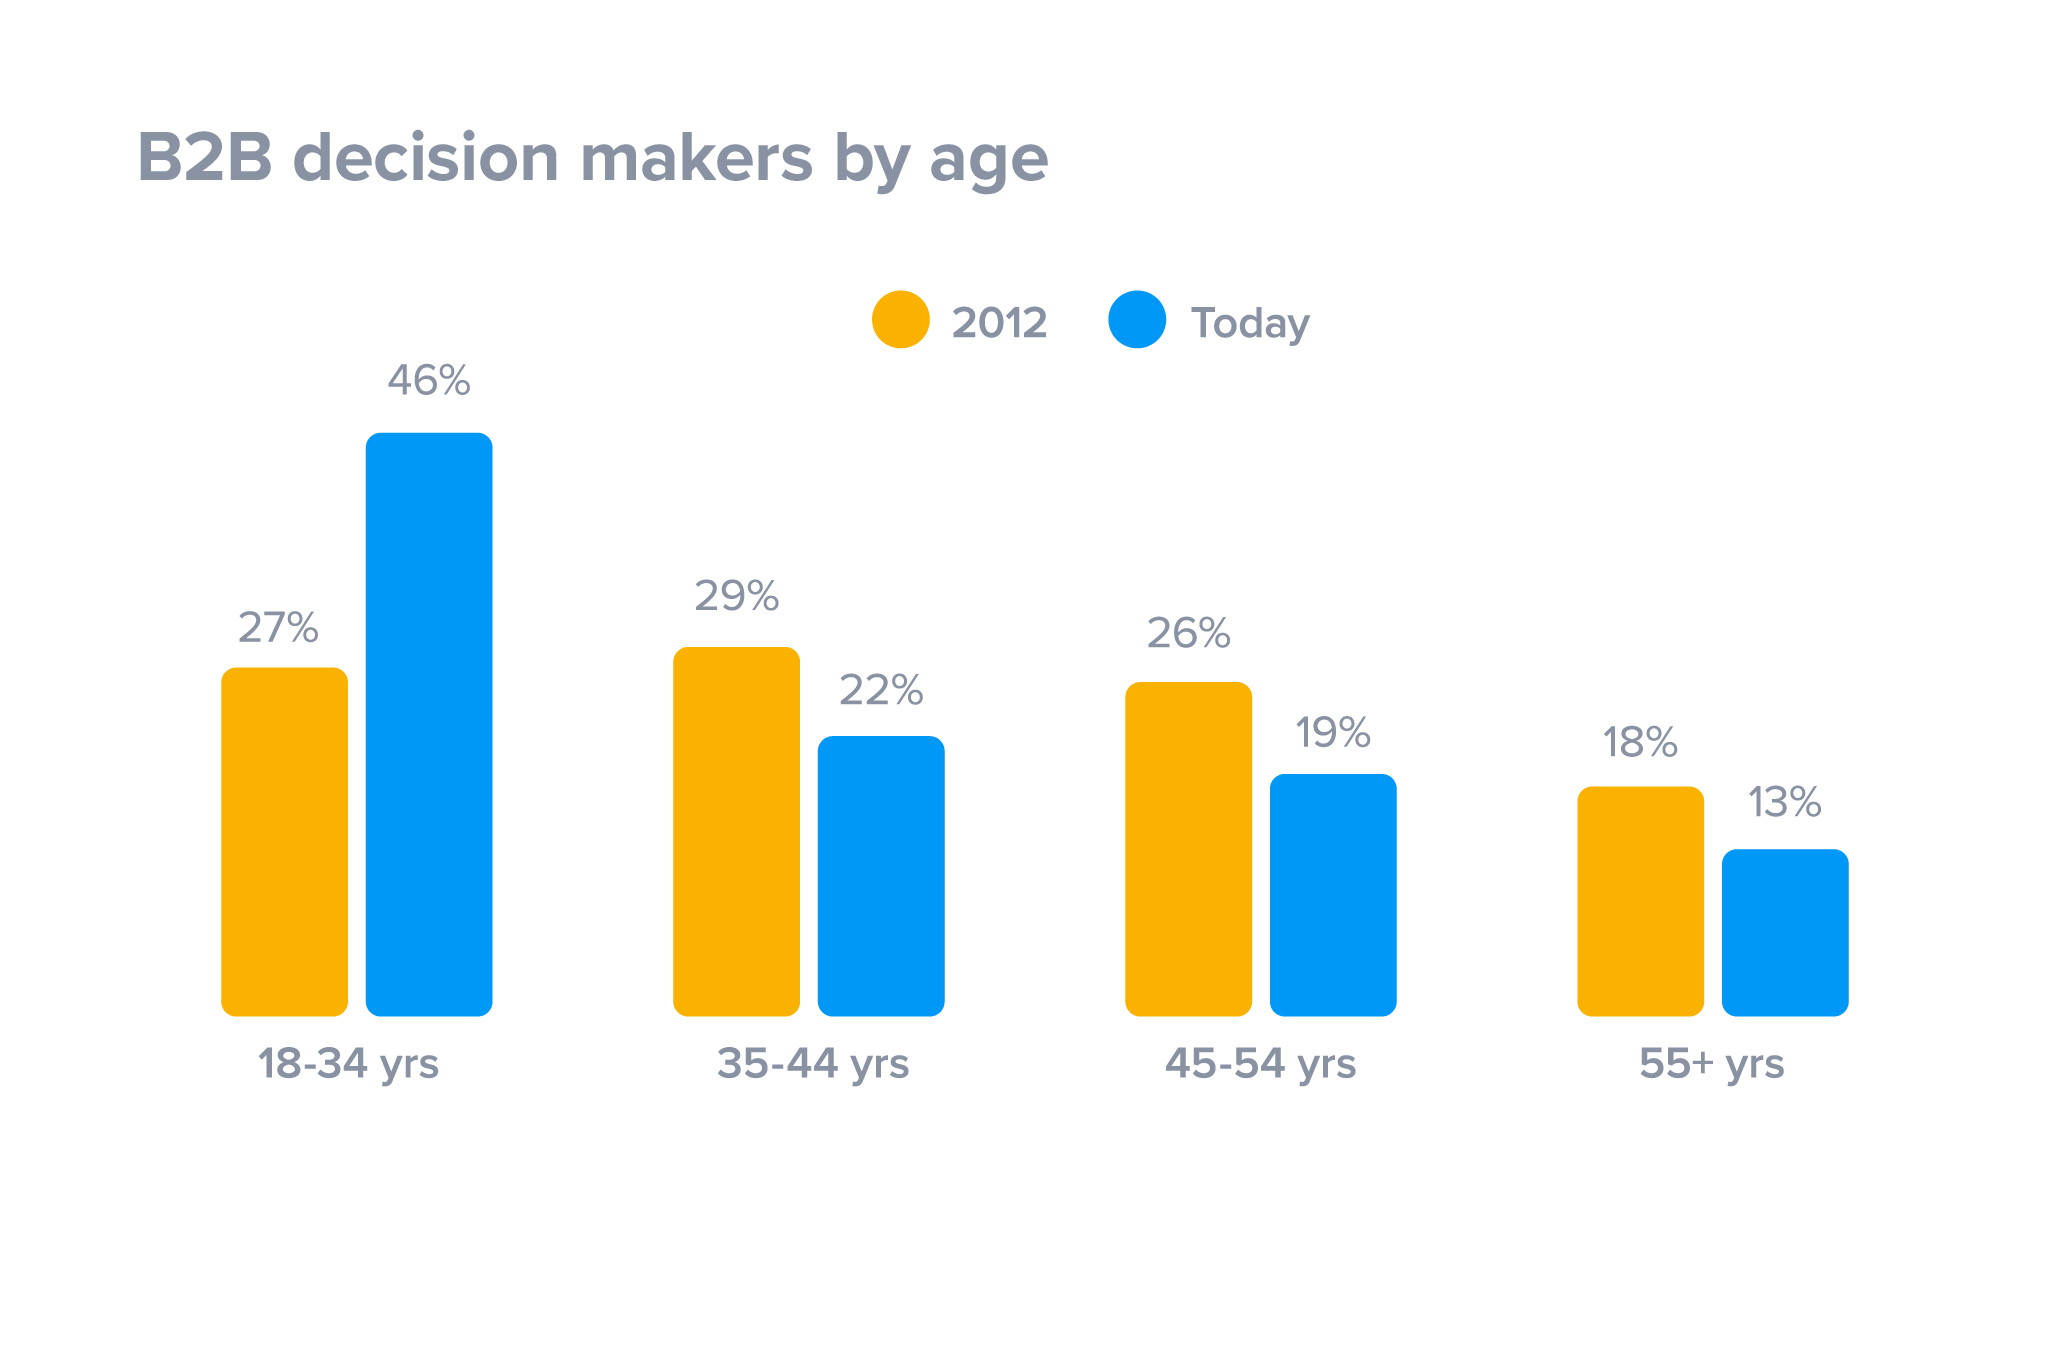 B2B decision makers by age